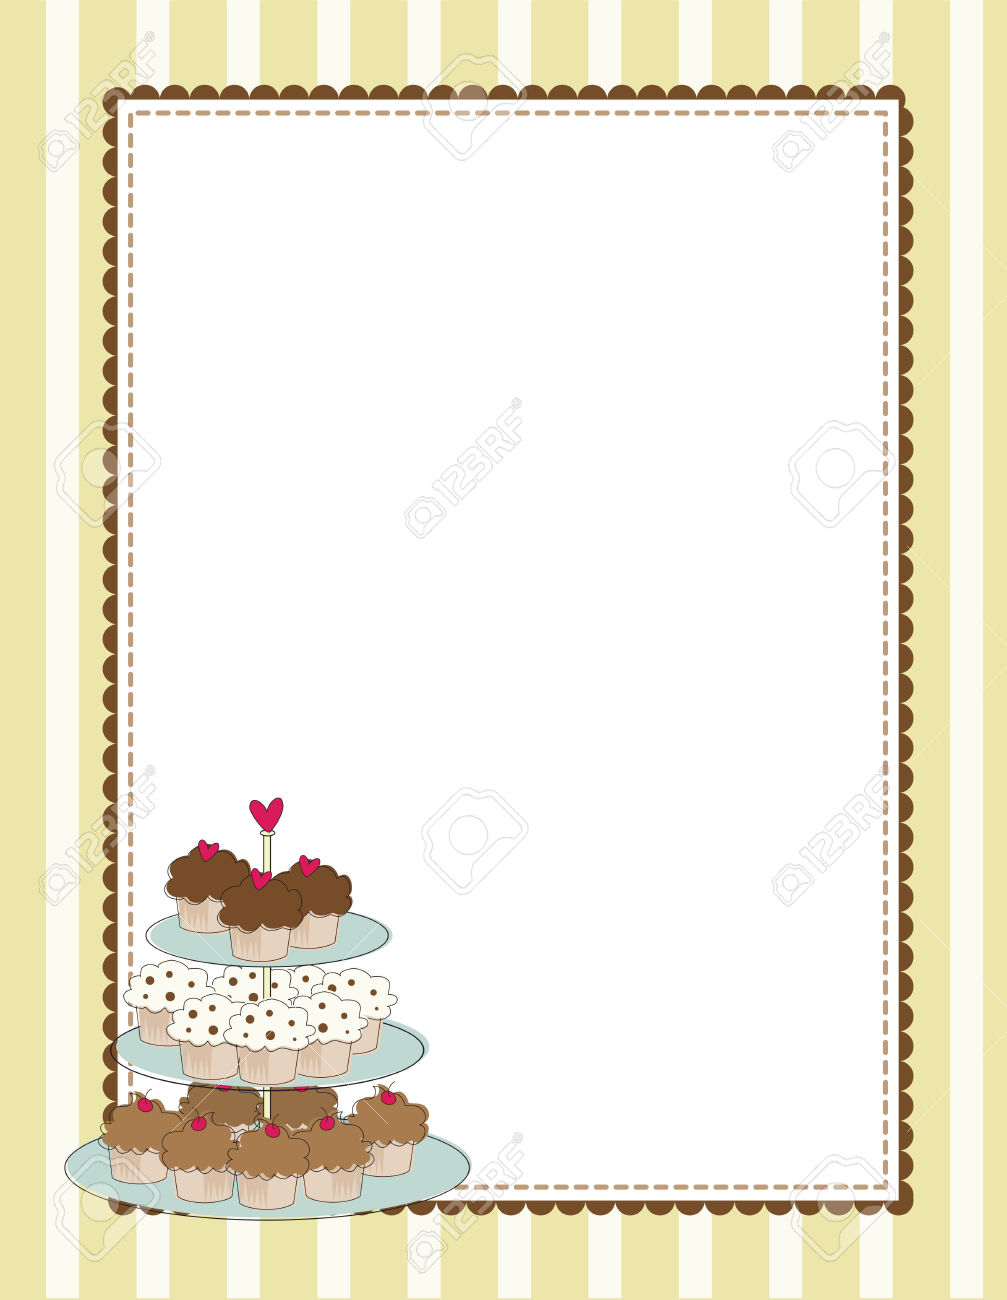 Muffin borders . Cake clipart frame